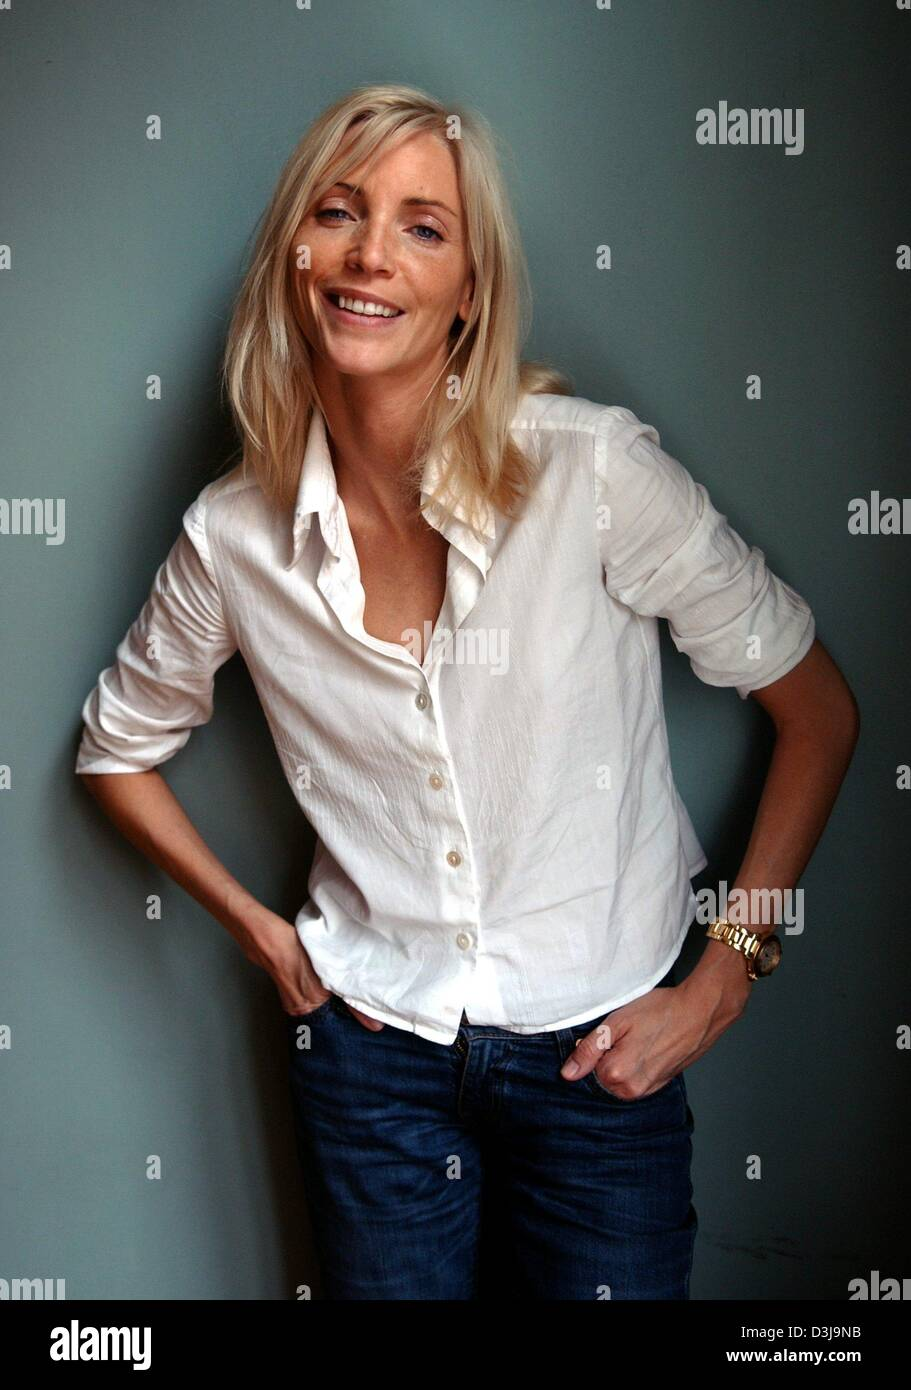 dpa german top model nadja auermann smiles as she poses dressed stock photo 53877863 alamy. Black Bedroom Furniture Sets. Home Design Ideas